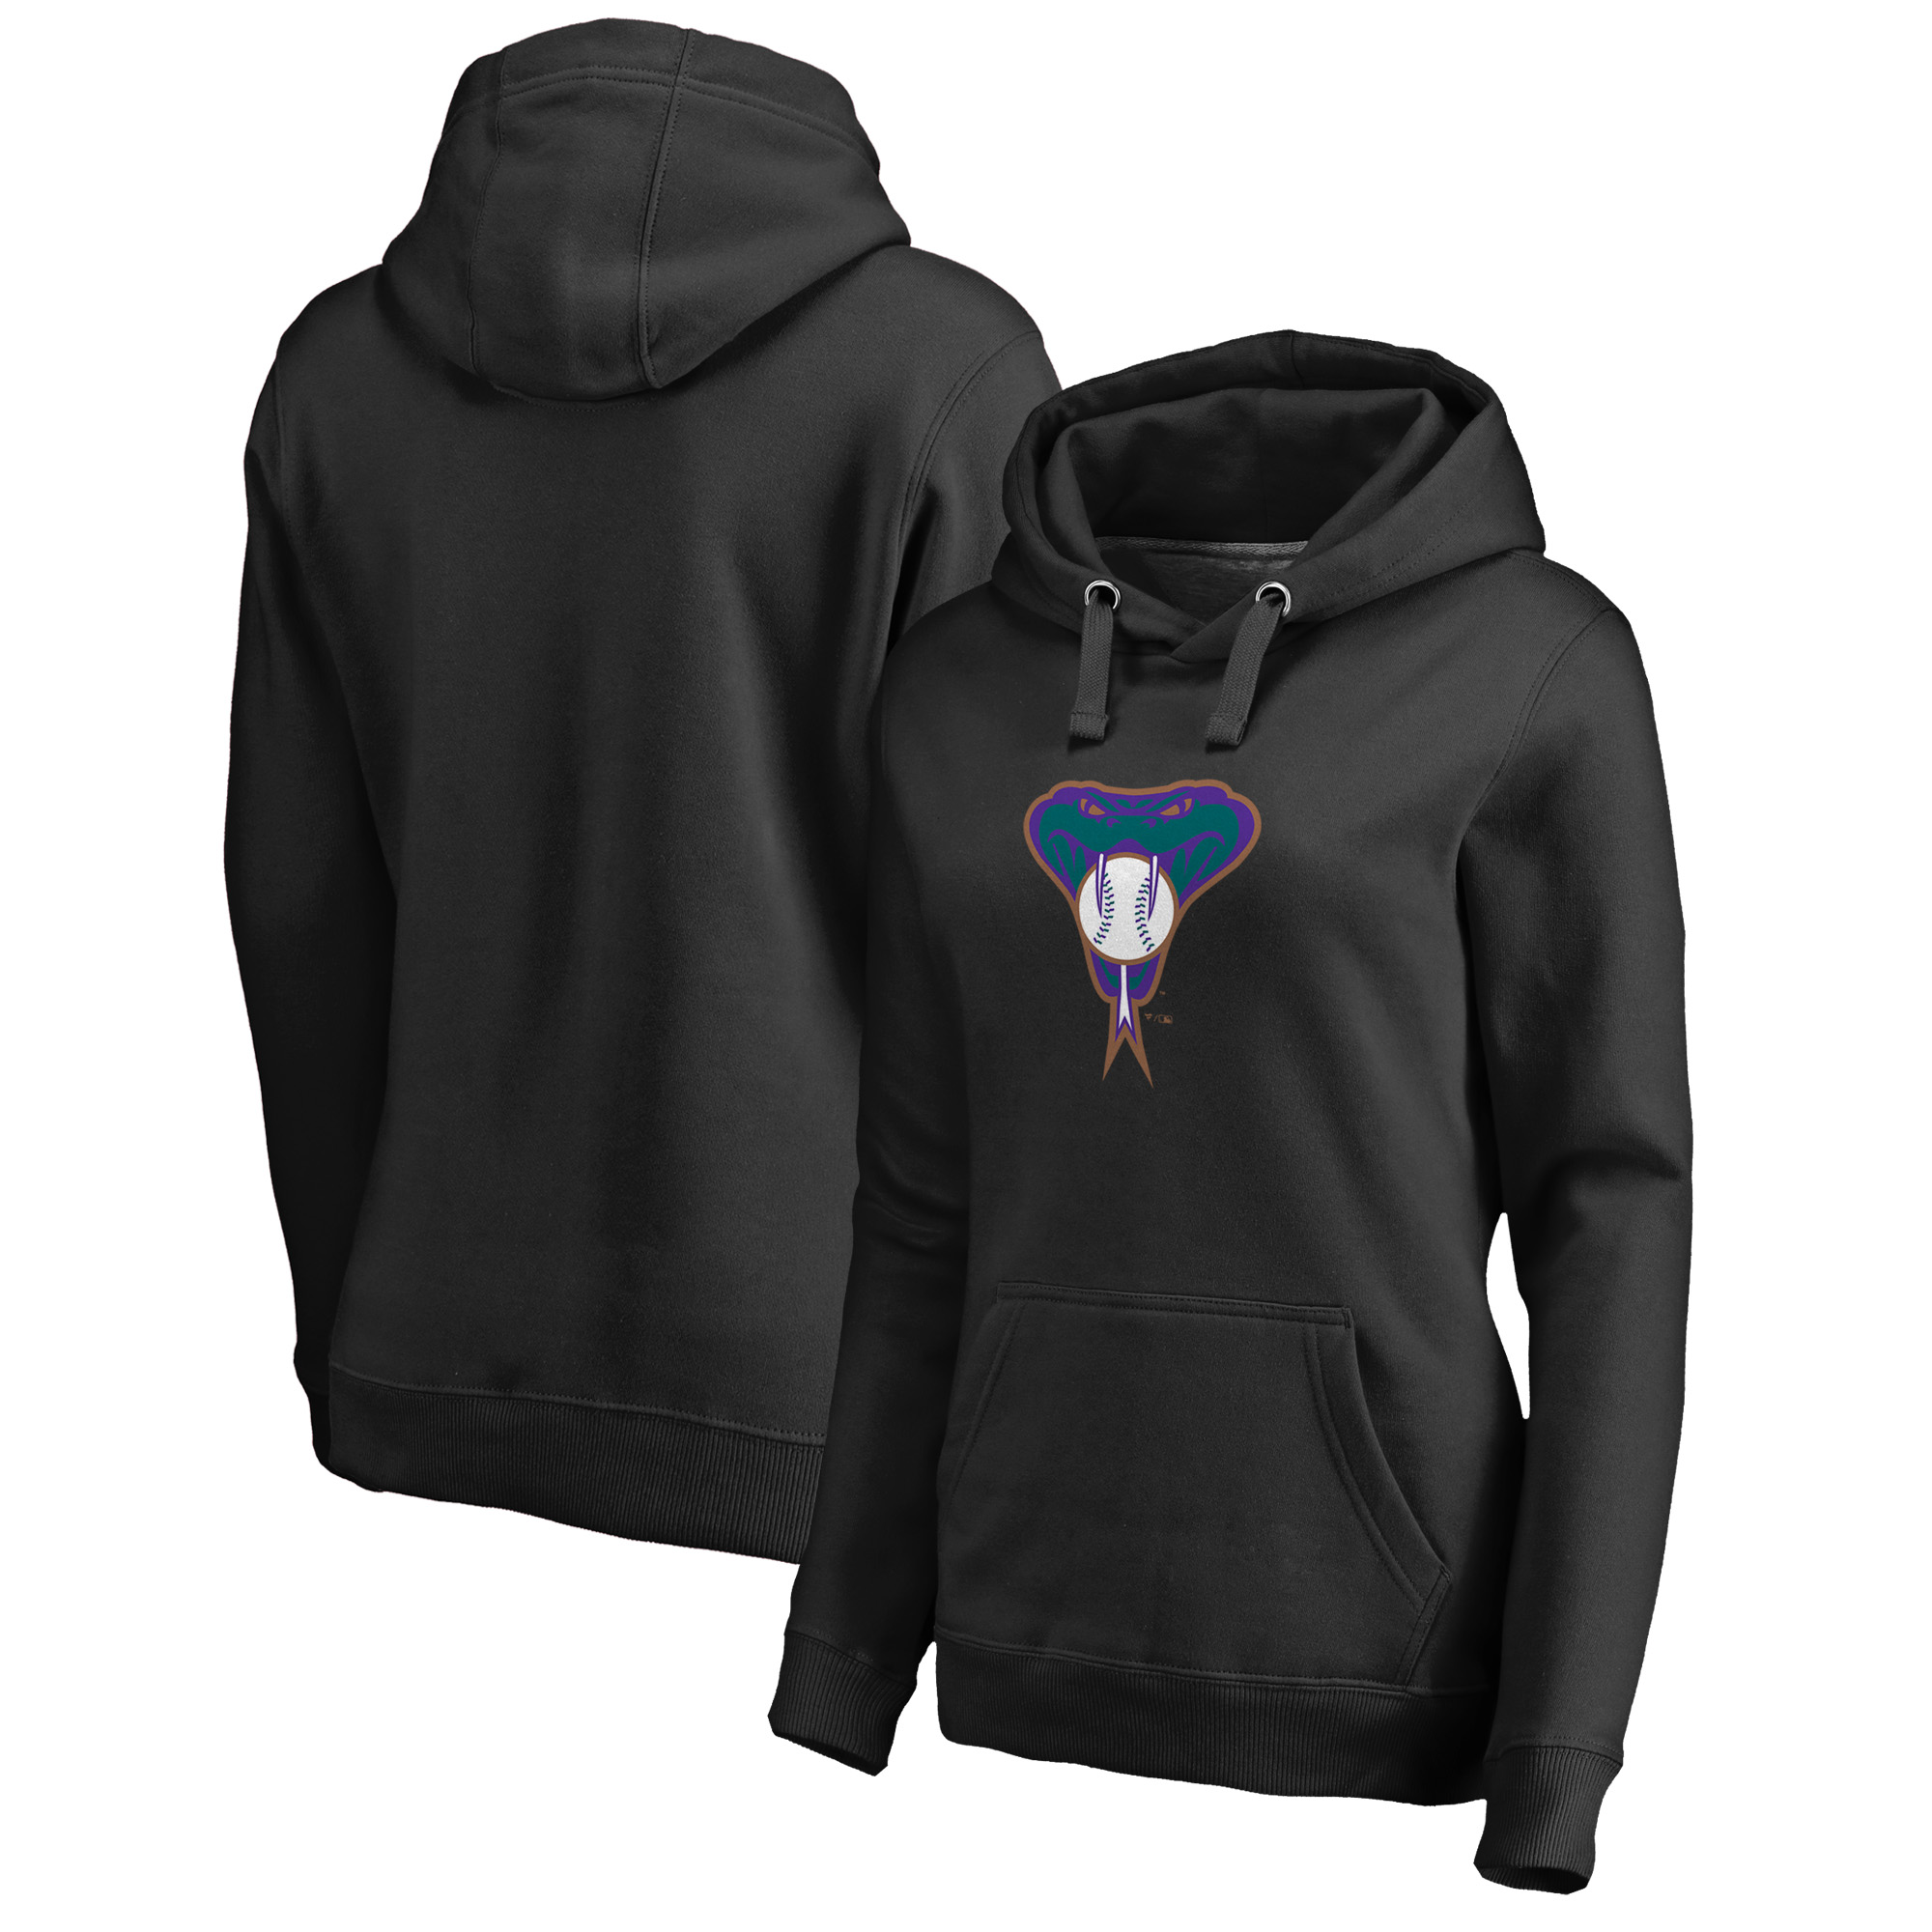 Arizona Diamondbacks Fanatics Branded Women's Plus Size Cooperstown Collection Huntington Pullover Hoodie - Black